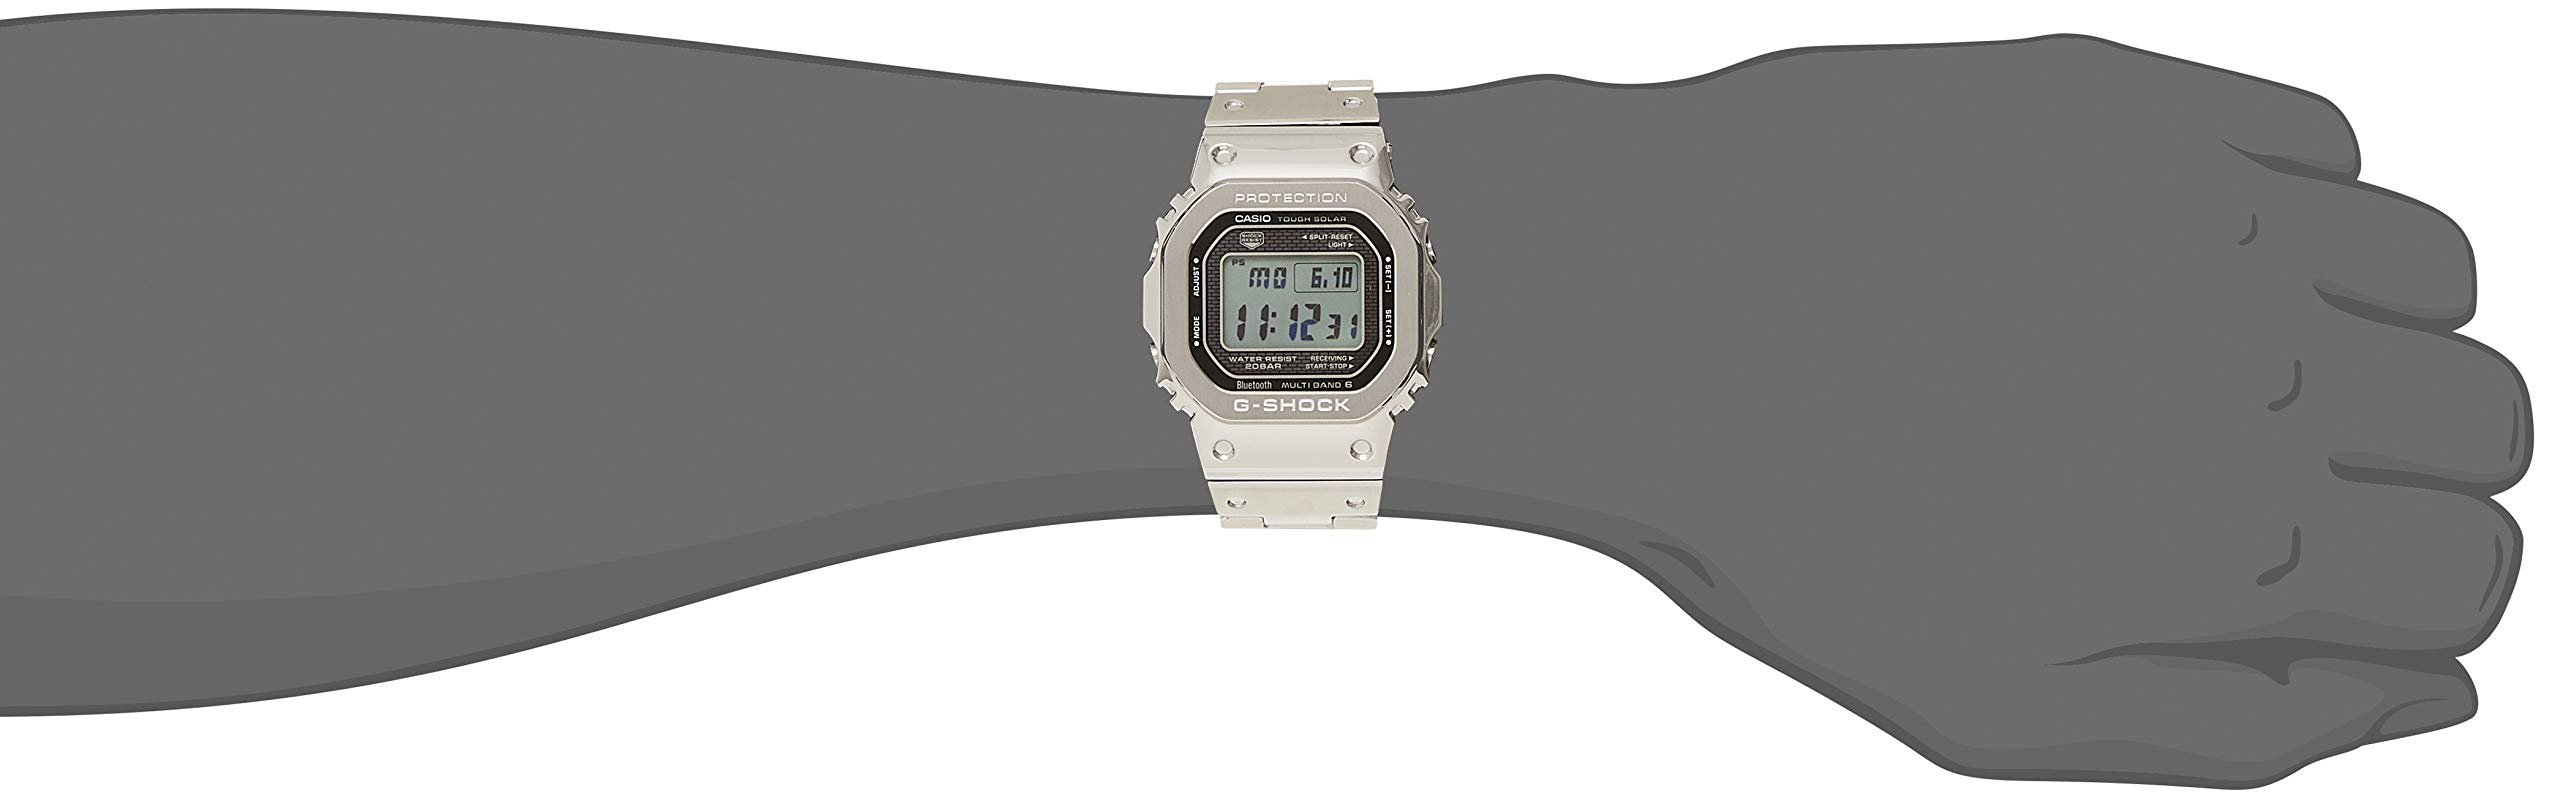 CASIO G-SHOCK Connected GMW-B5000D-1JF Radio Solar Watch (Japan Domestic Genuine Product) by G-Shock (Image #2)